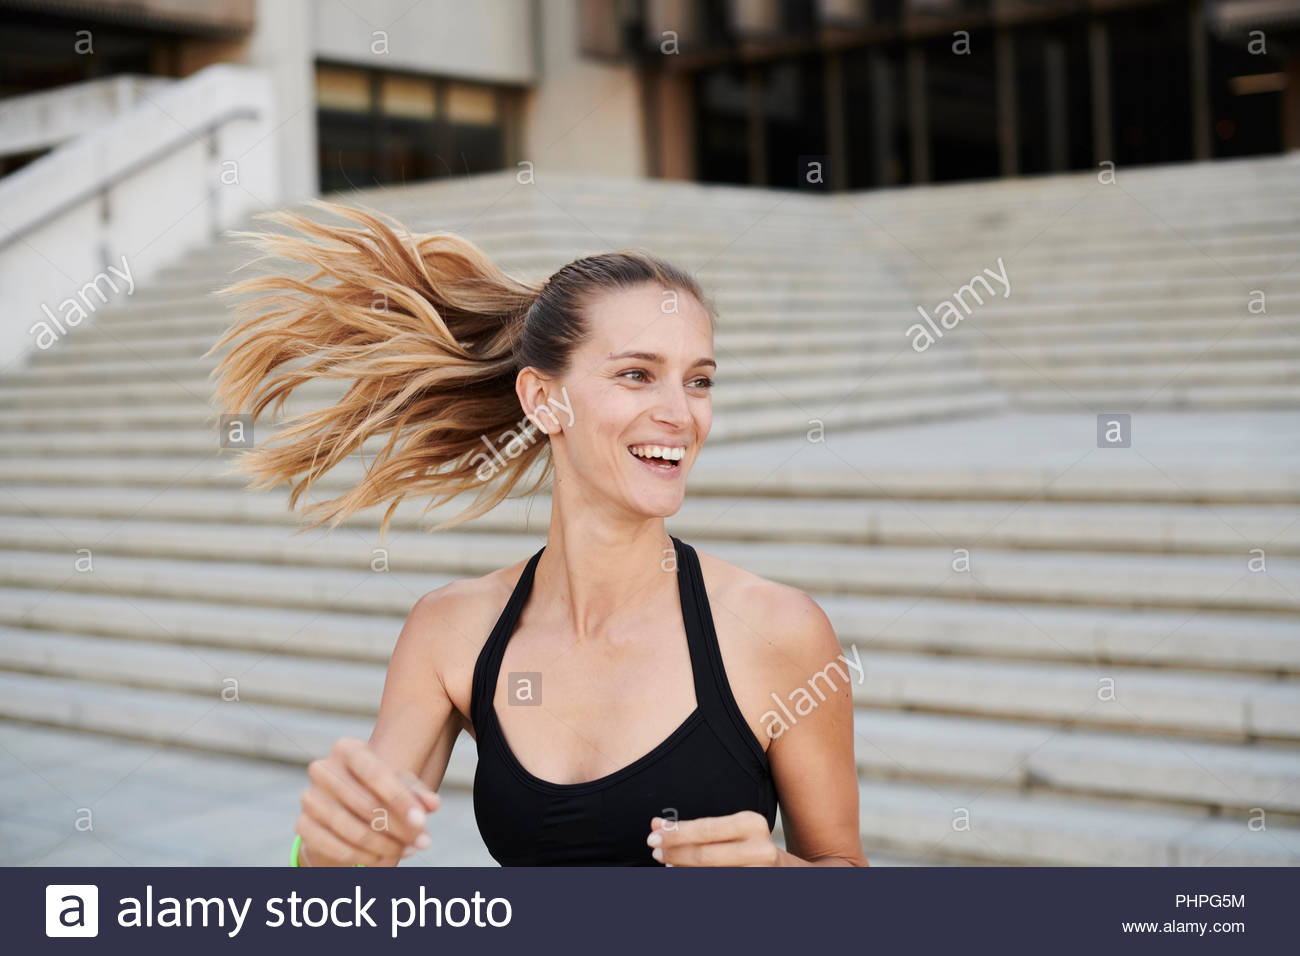 Smiling woman with windswept hair Photo Stock